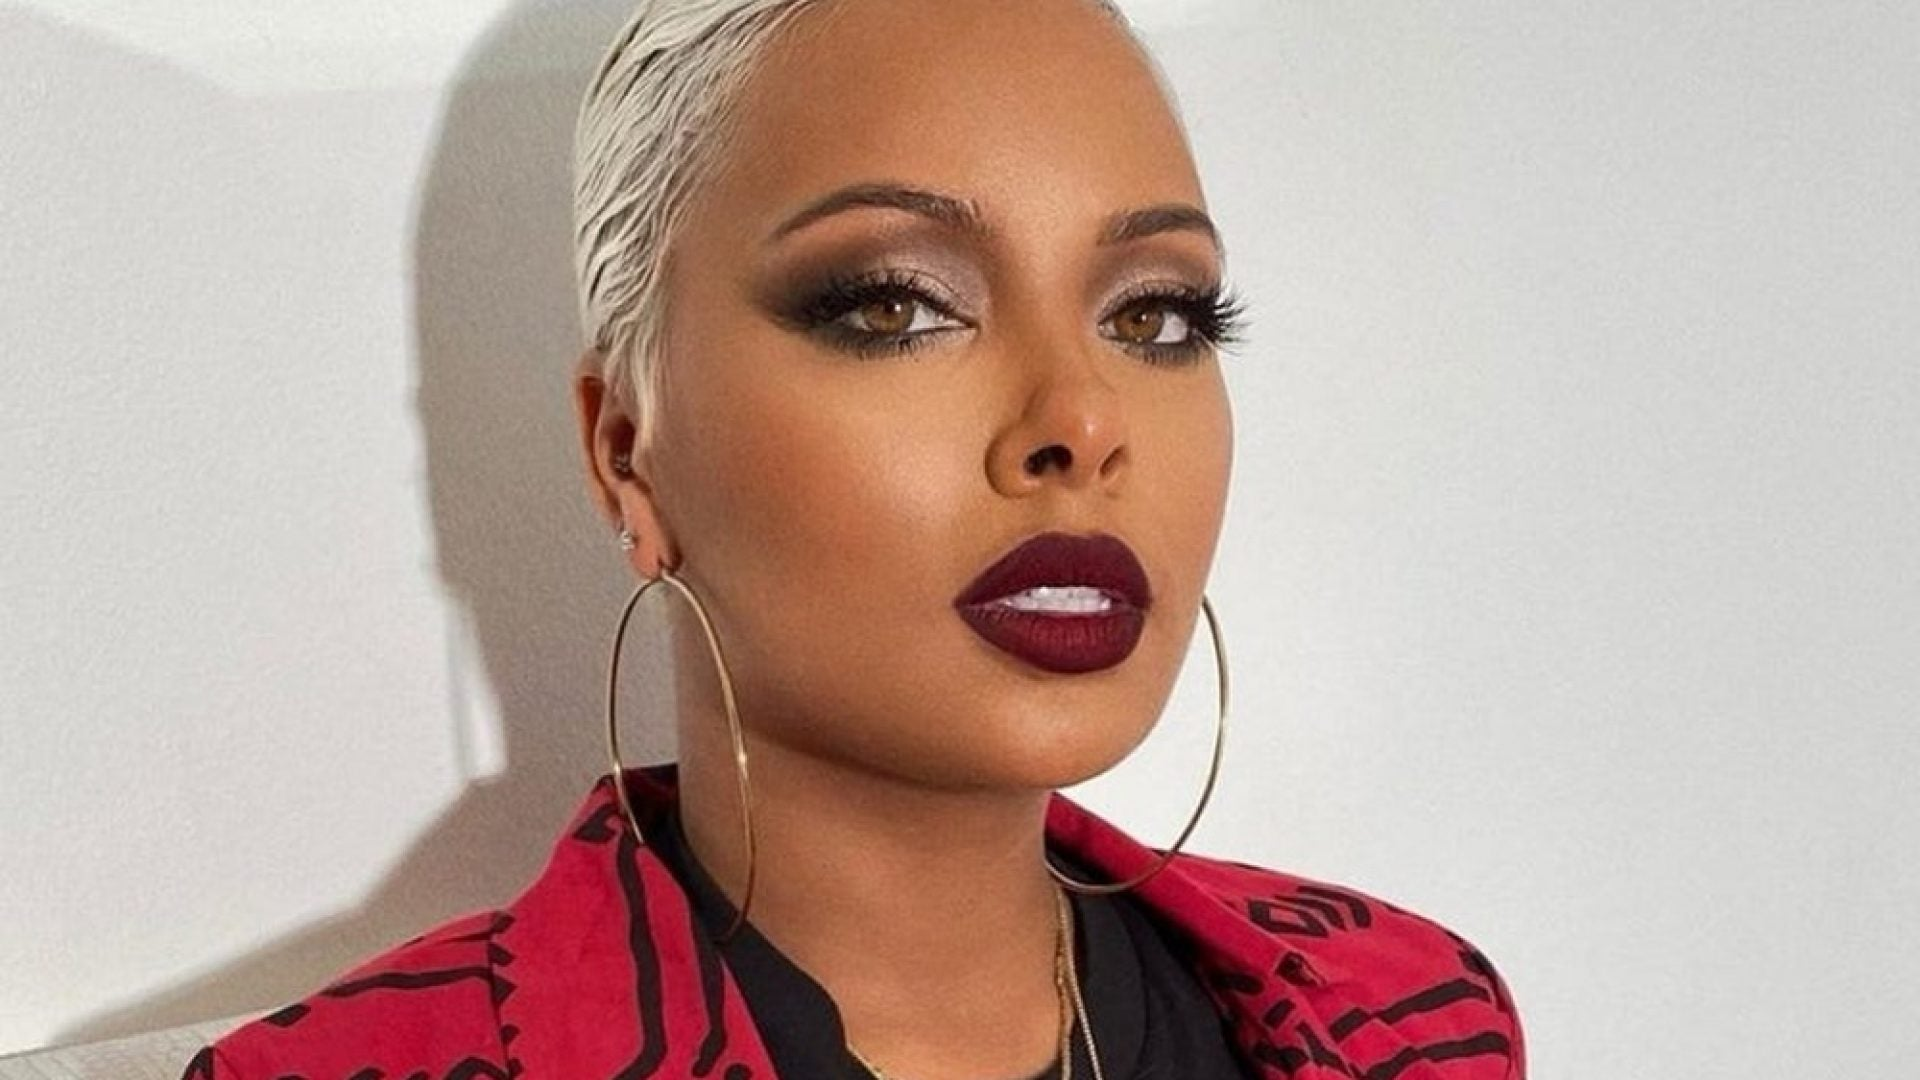 eva-marcille-promotes-this-controversial-message-from-the-blm-movement